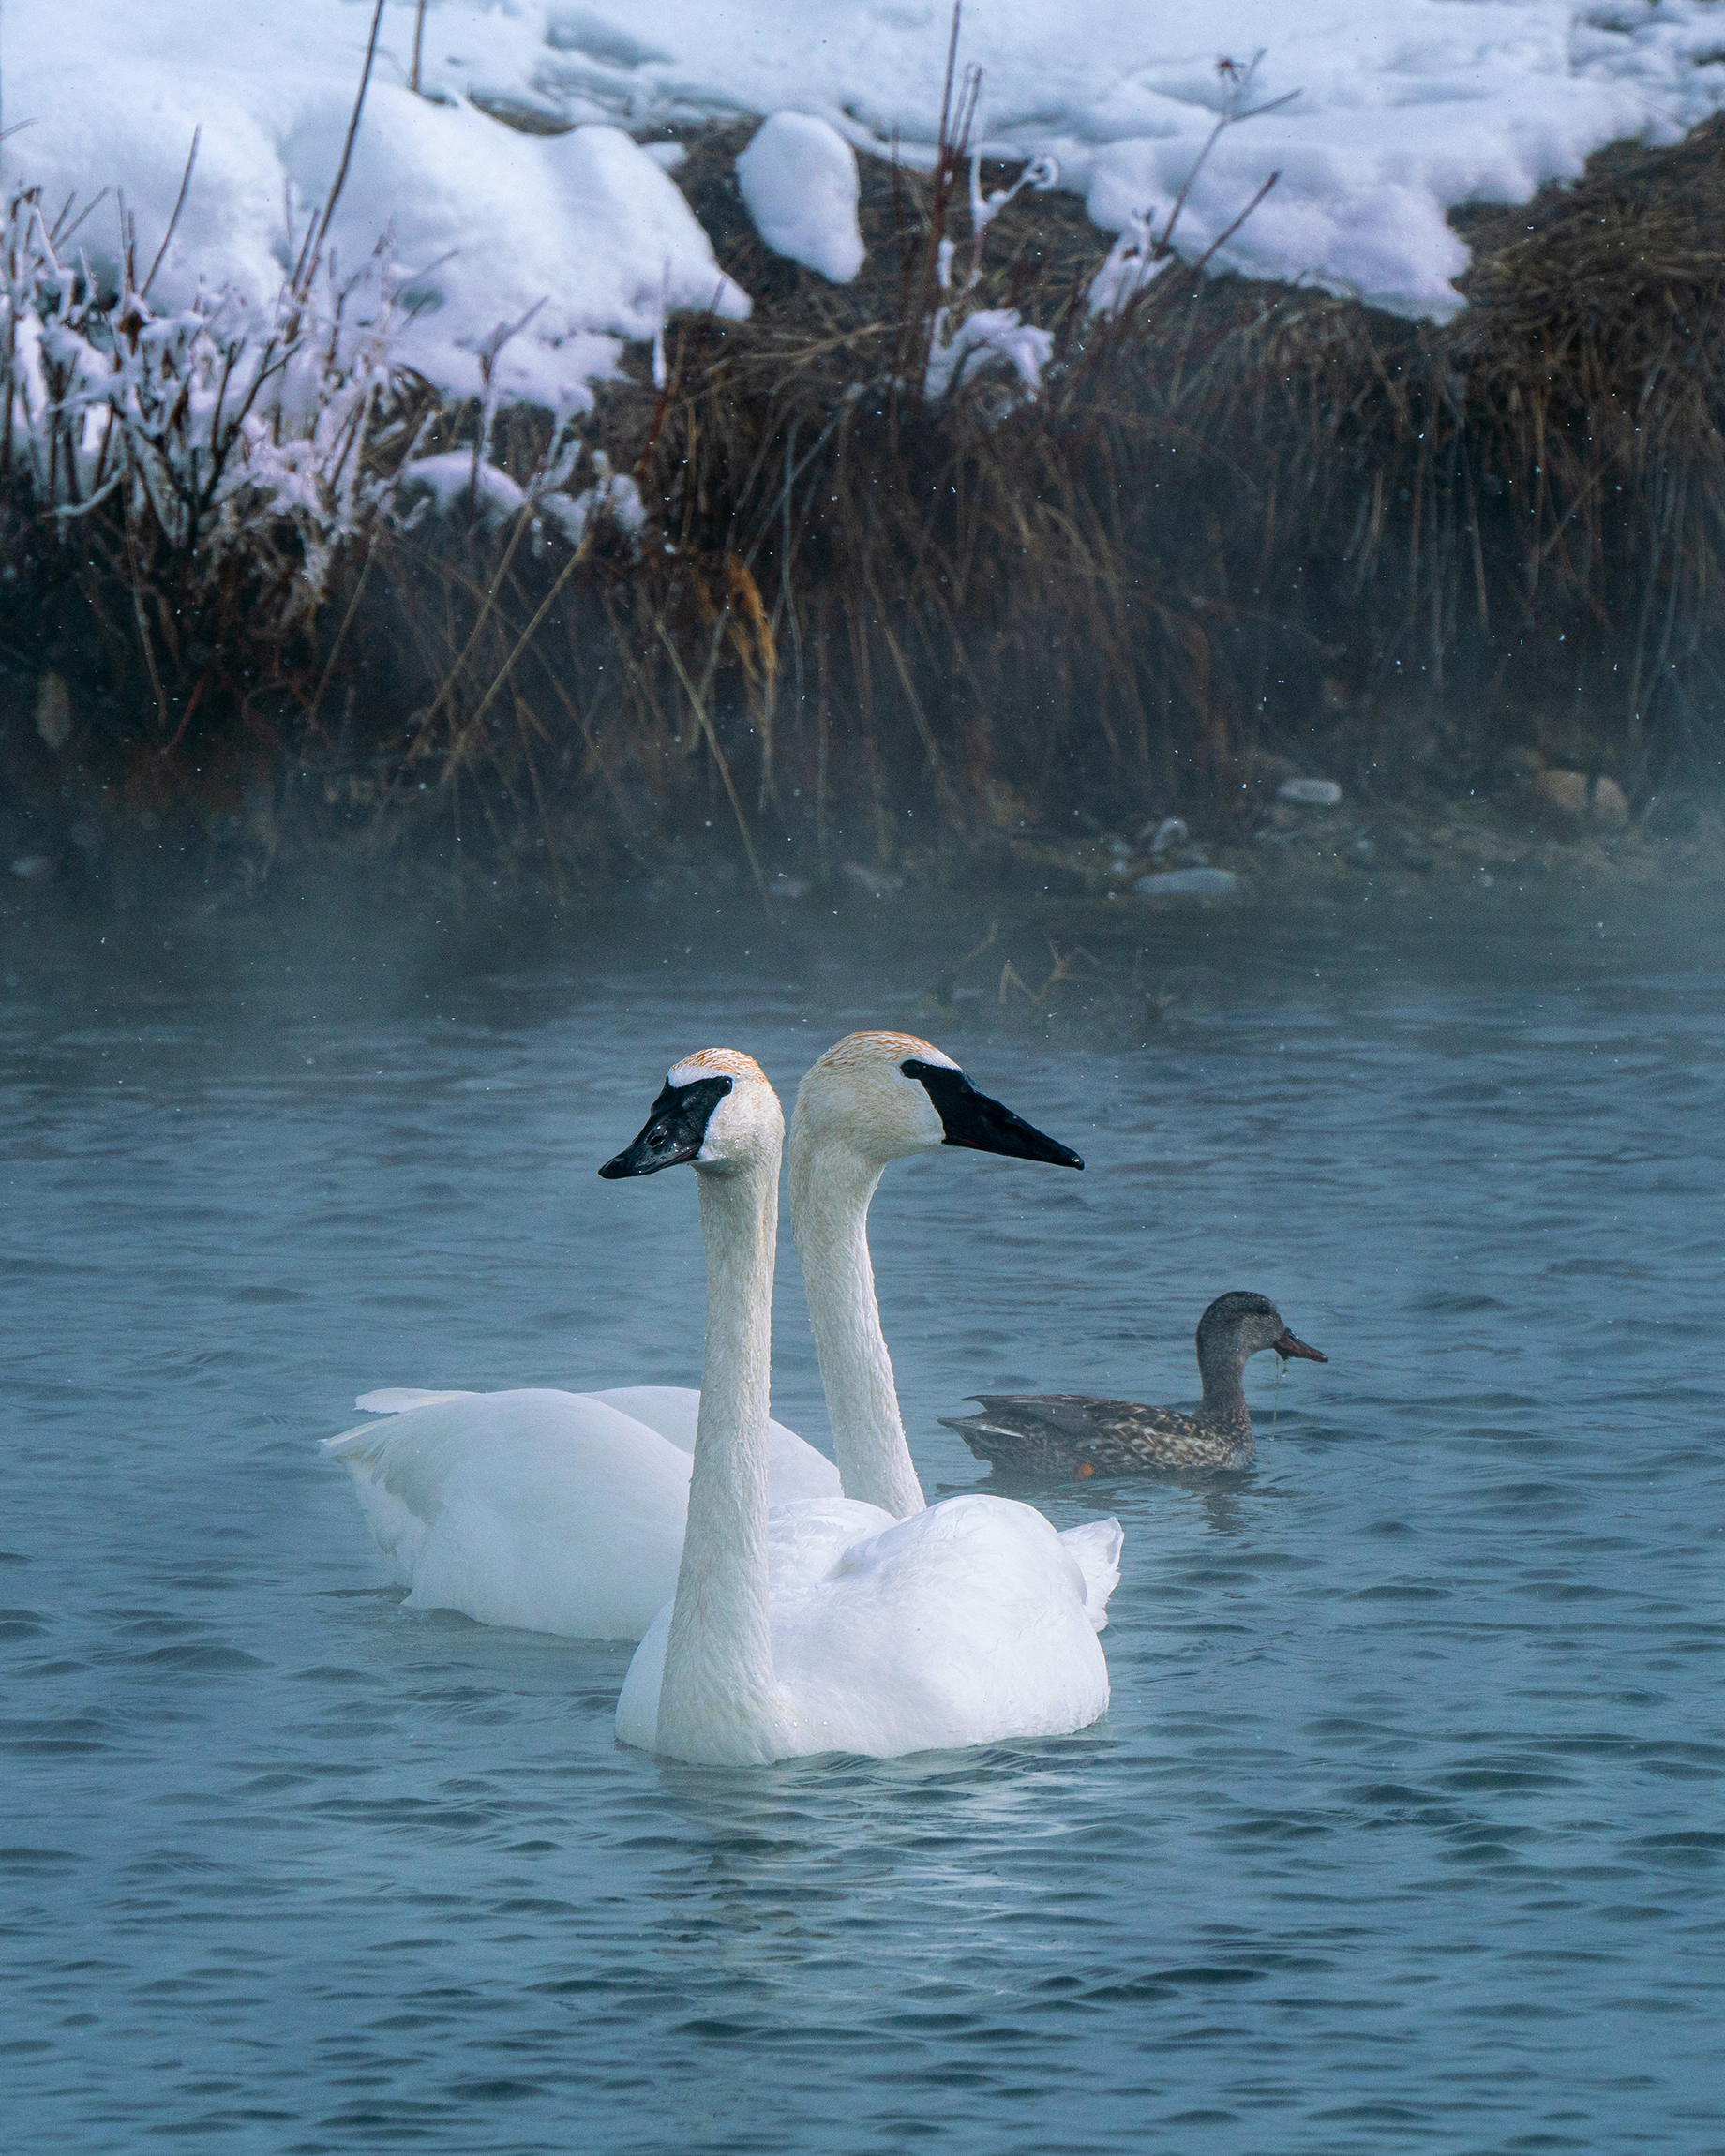 #trumpeterswans, #swans, #duck, #symbiotic, #snow, #hotspring, #hotsprings, #kellym #jacksonhole, #wyoming, #winter, #wildlife, #wildlifephotography